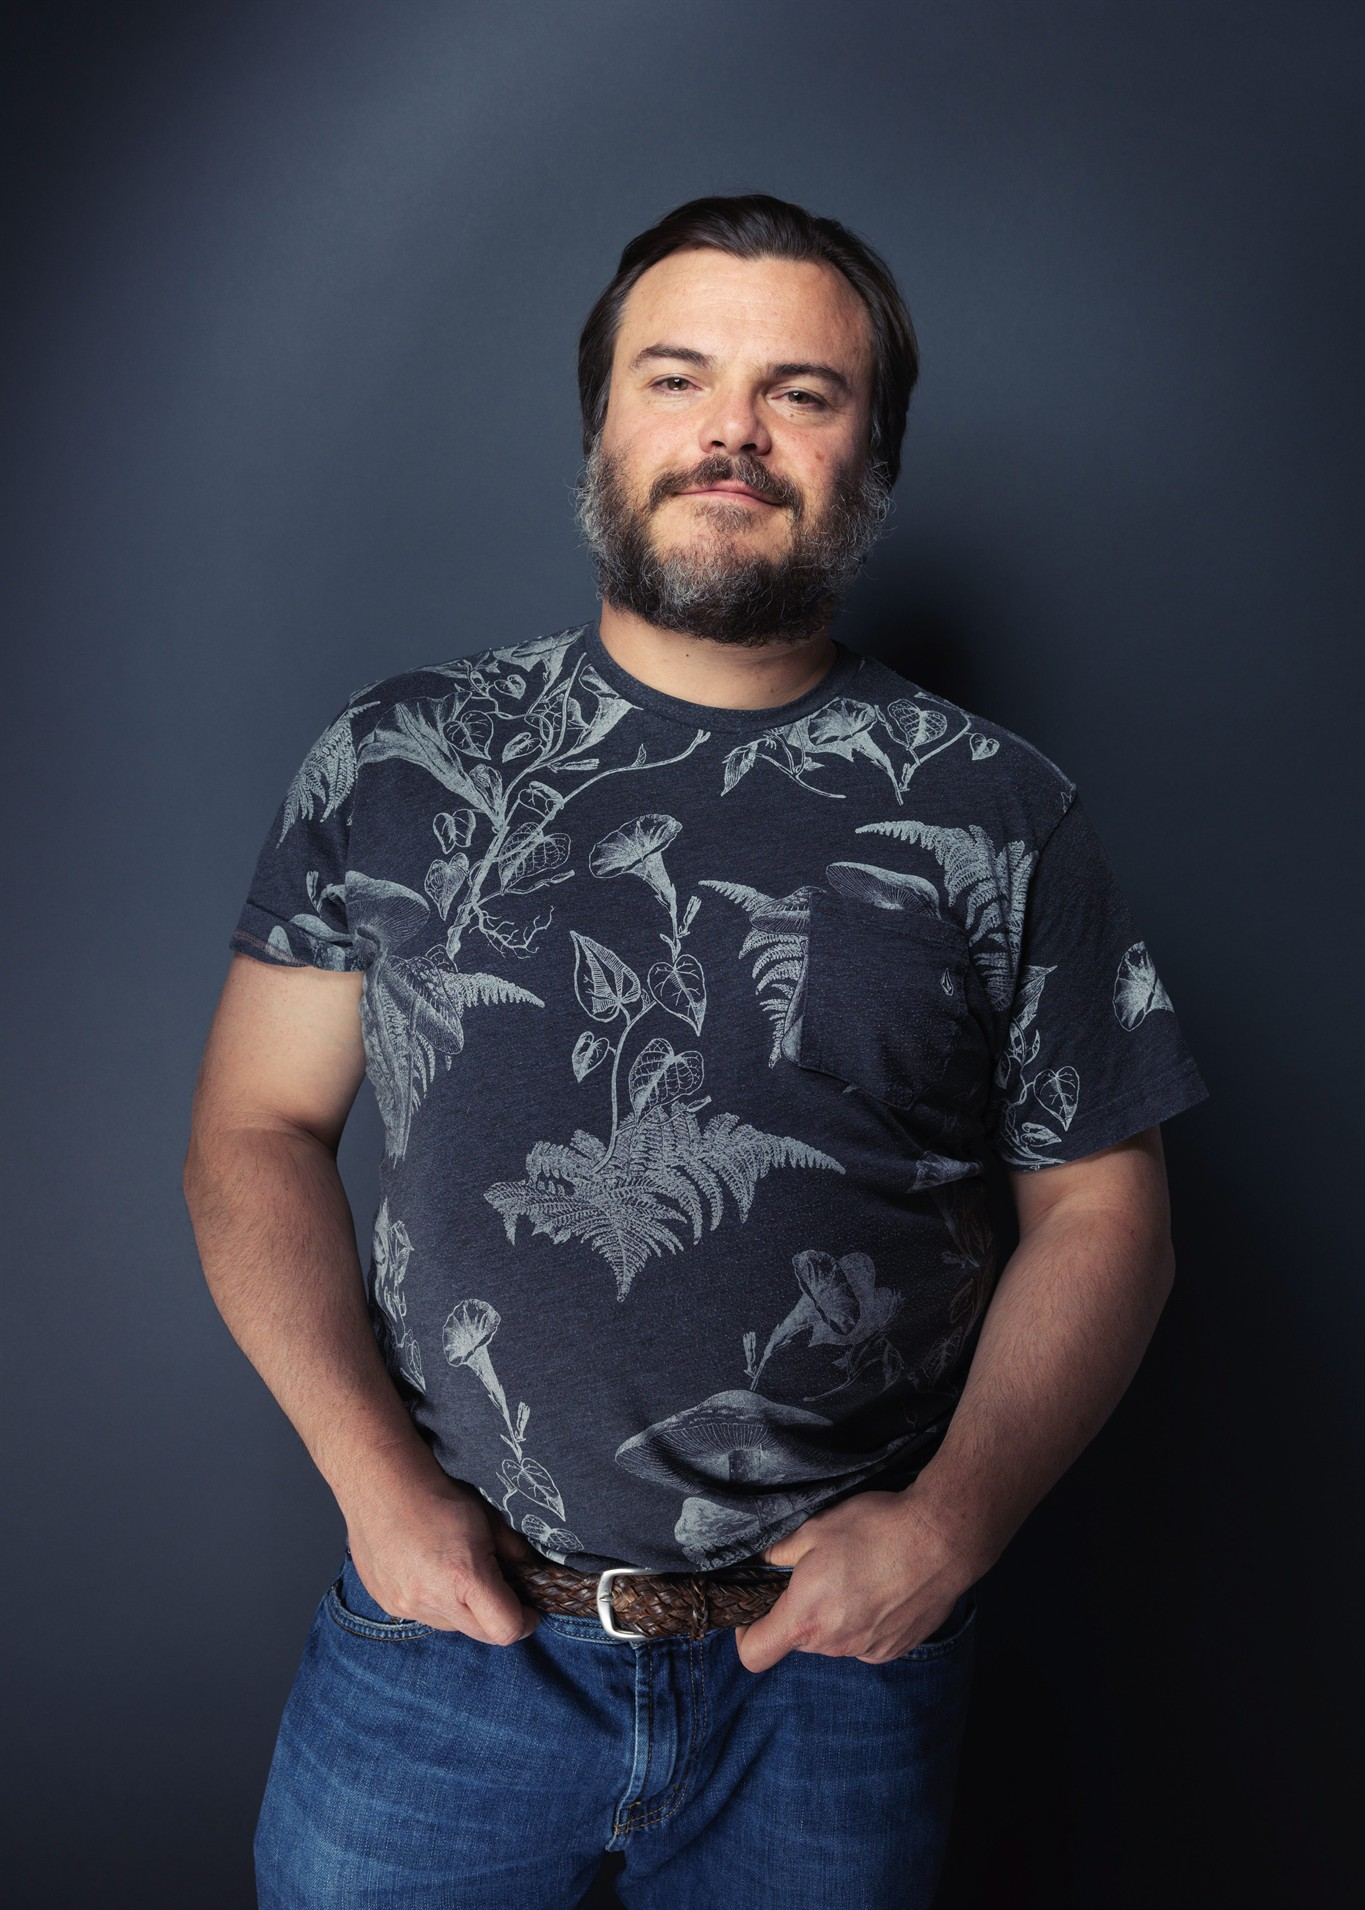 Shifting in a new direction, Jack Black rides 'The D Train ...